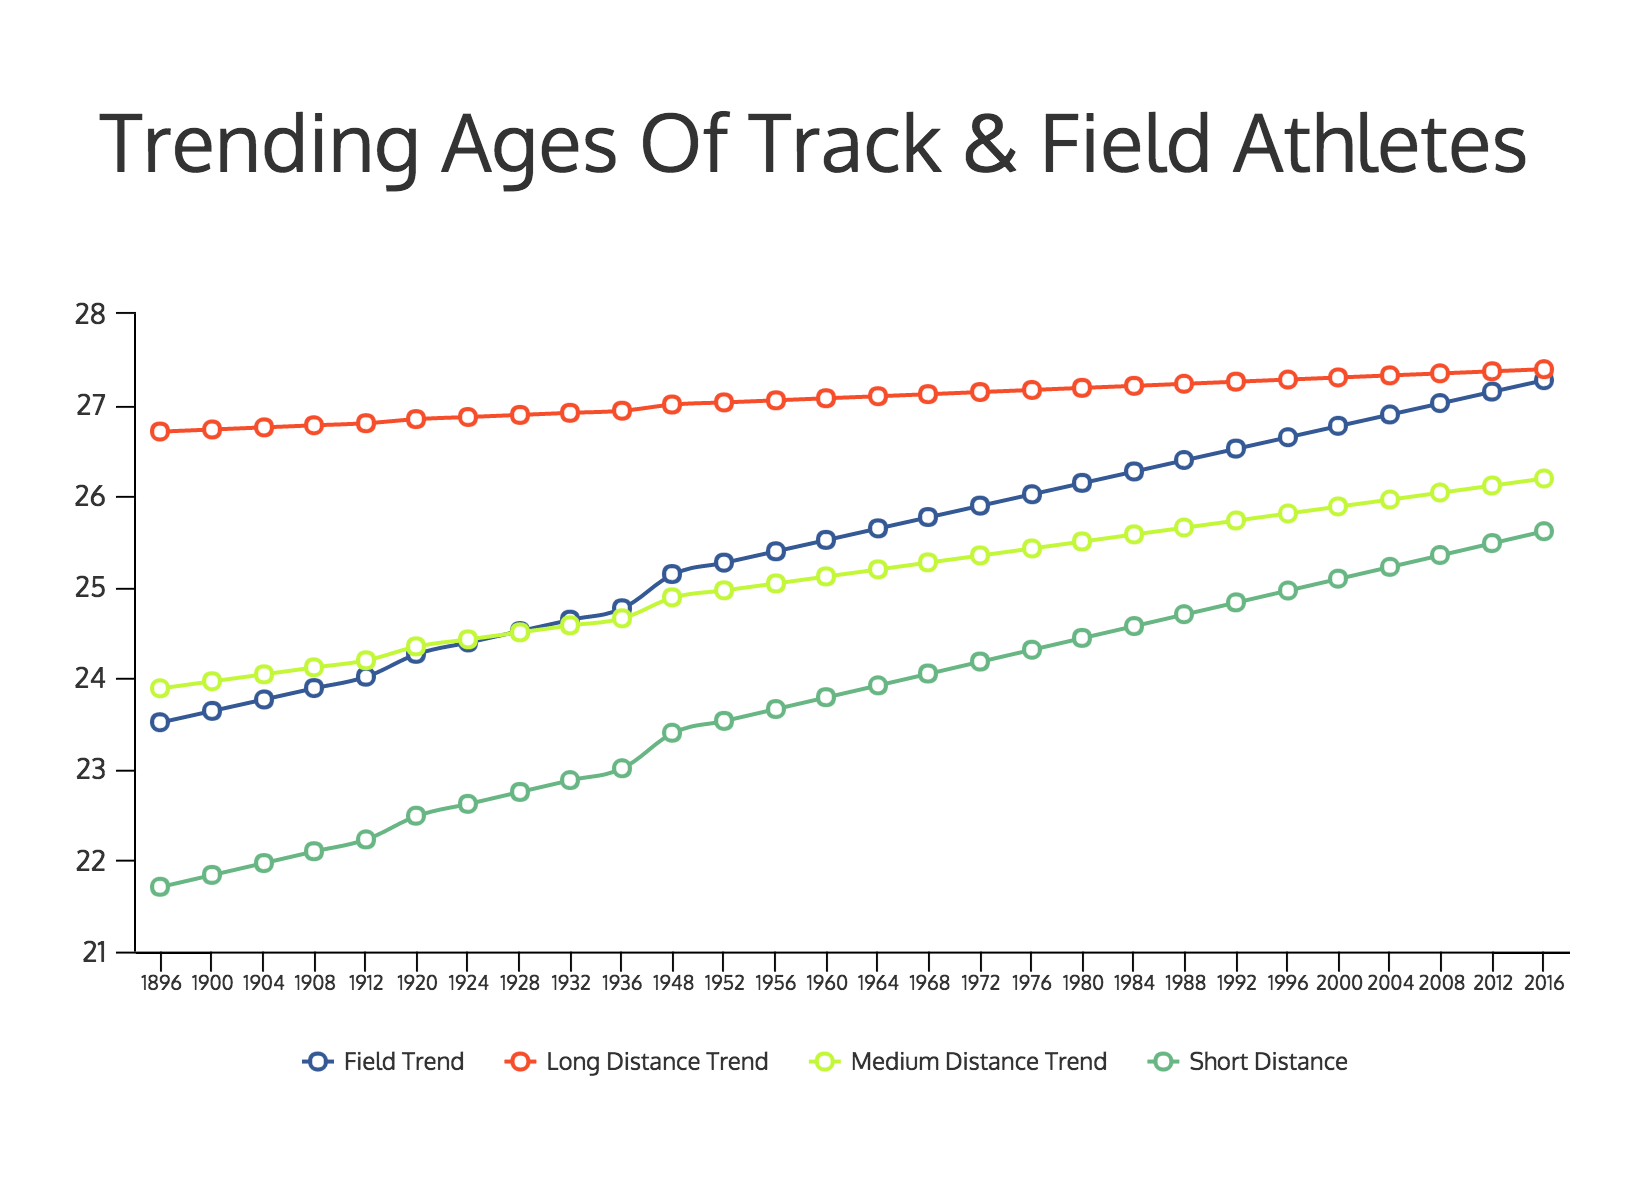 Average Age Of Olympic Track & Field Athletes